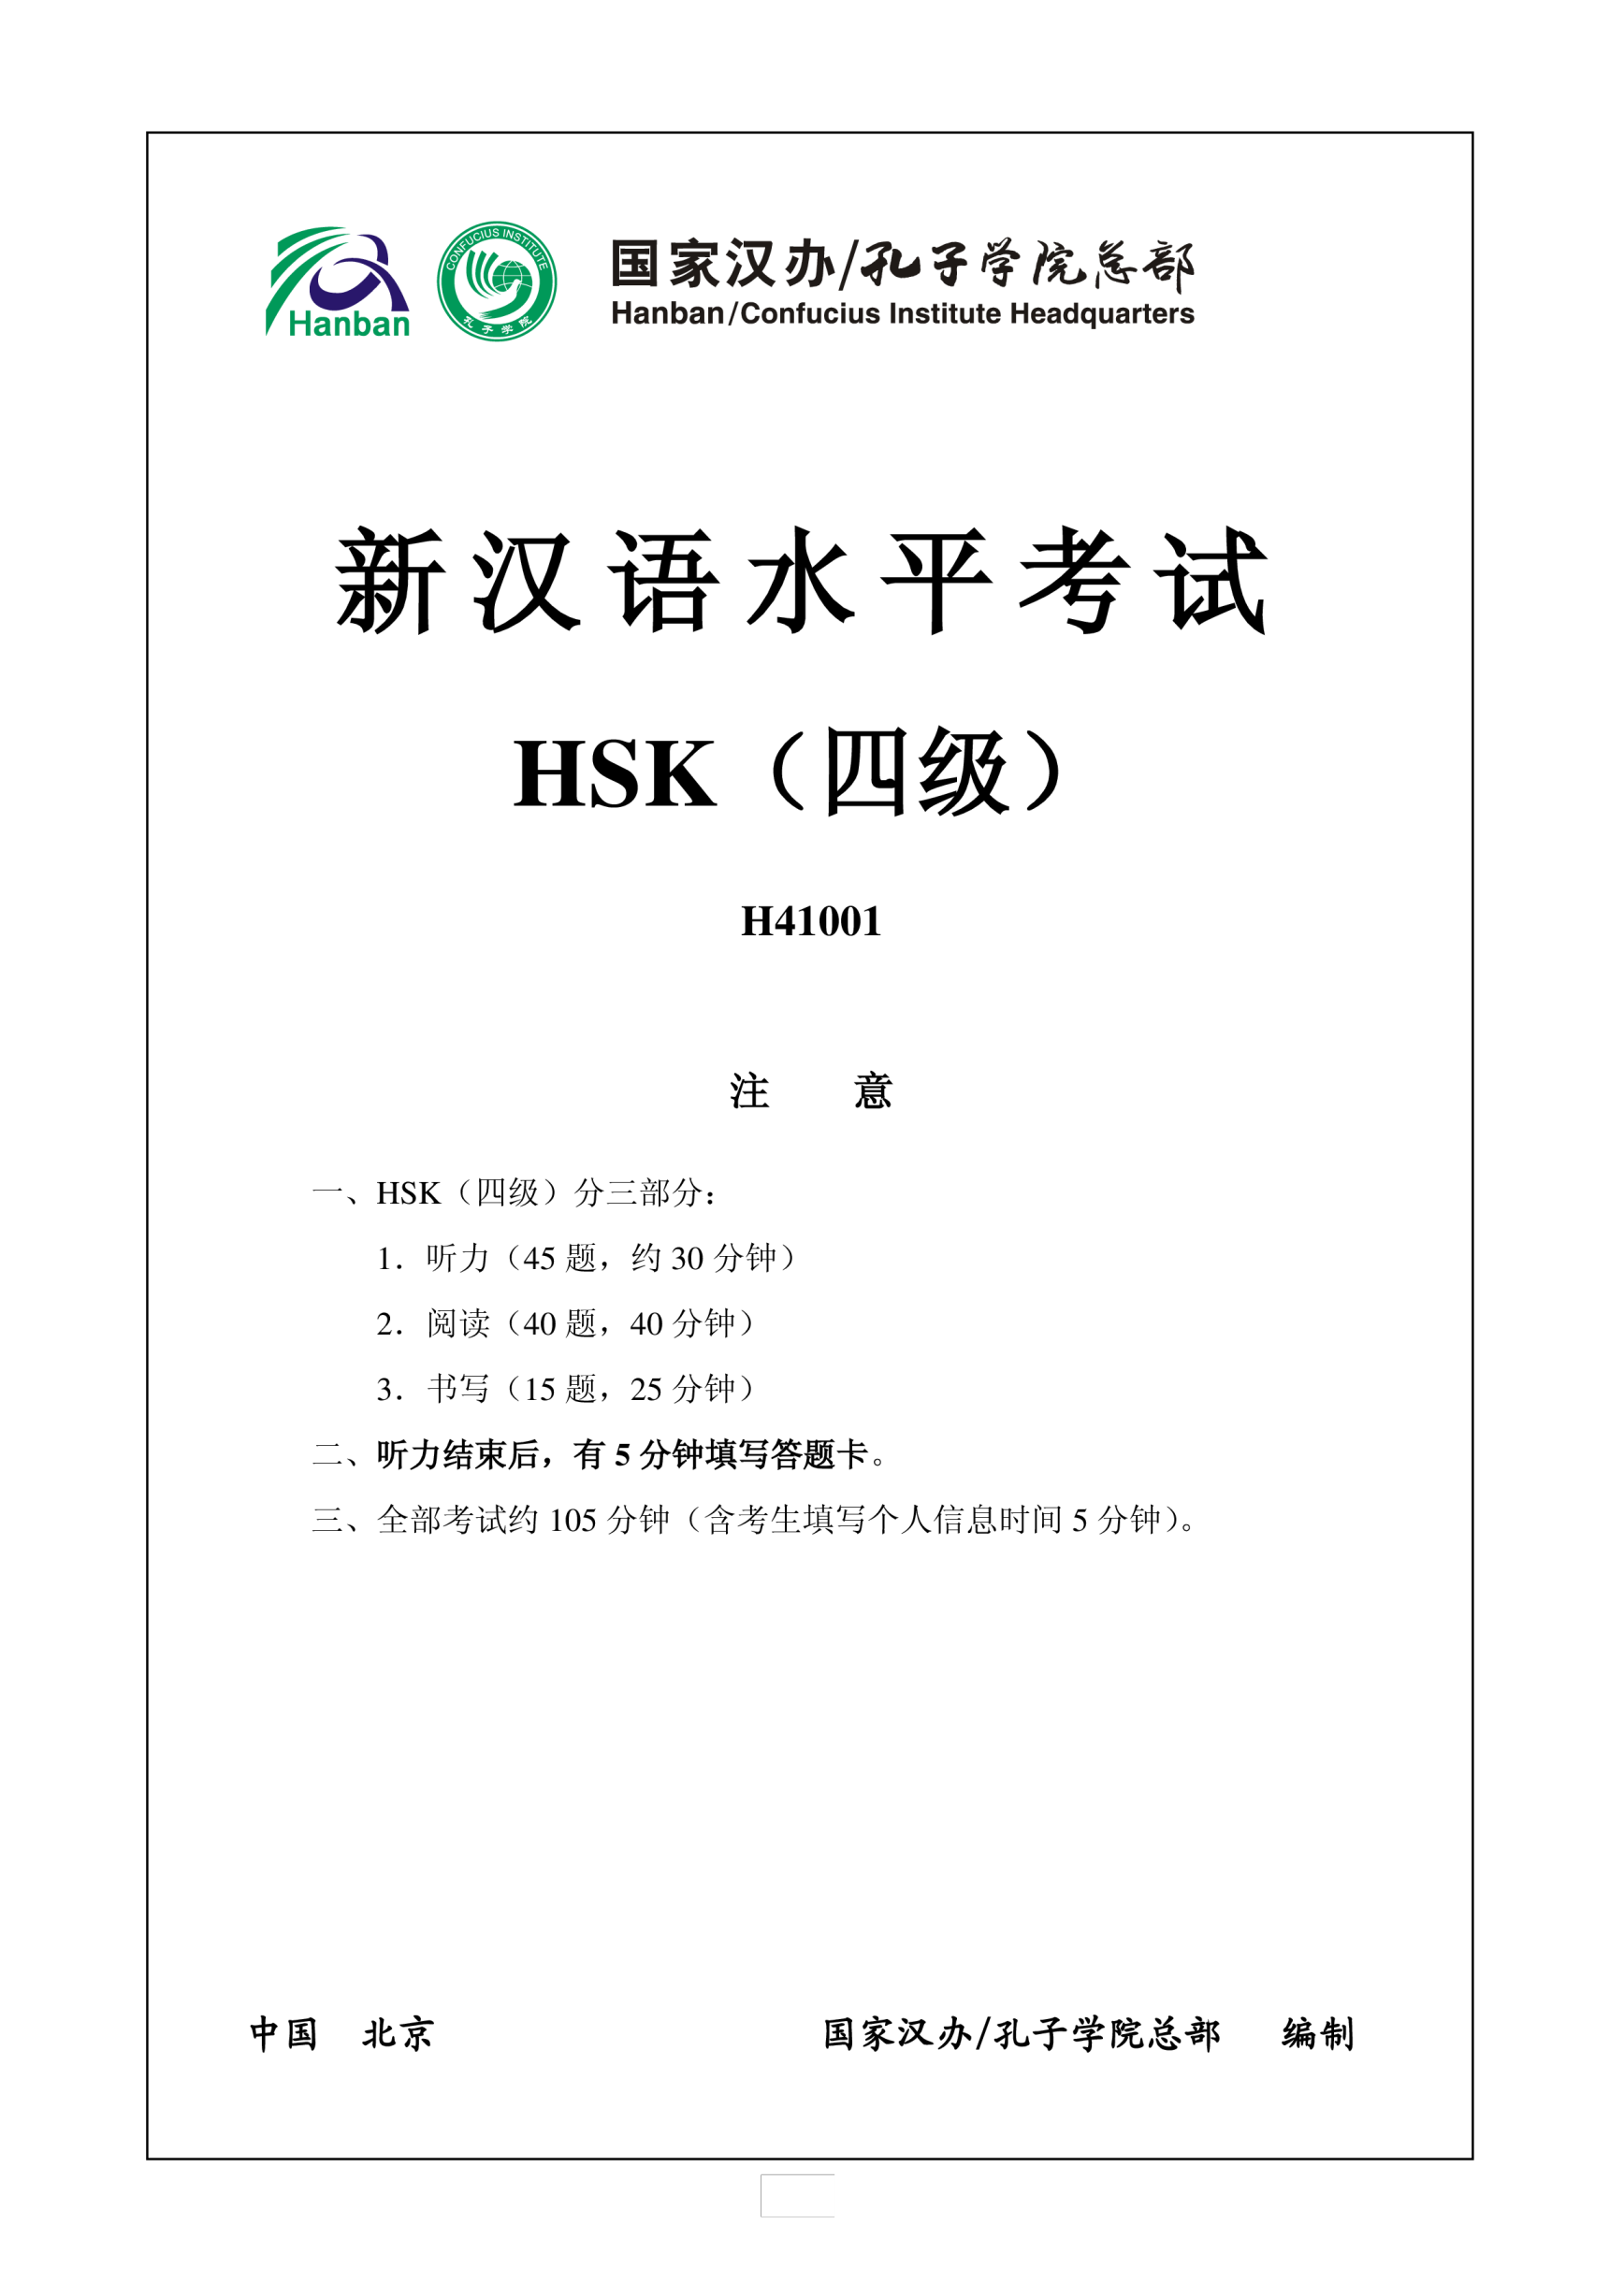 template preview imageHSK4 Chinese Exam including Answers # HSK H41001